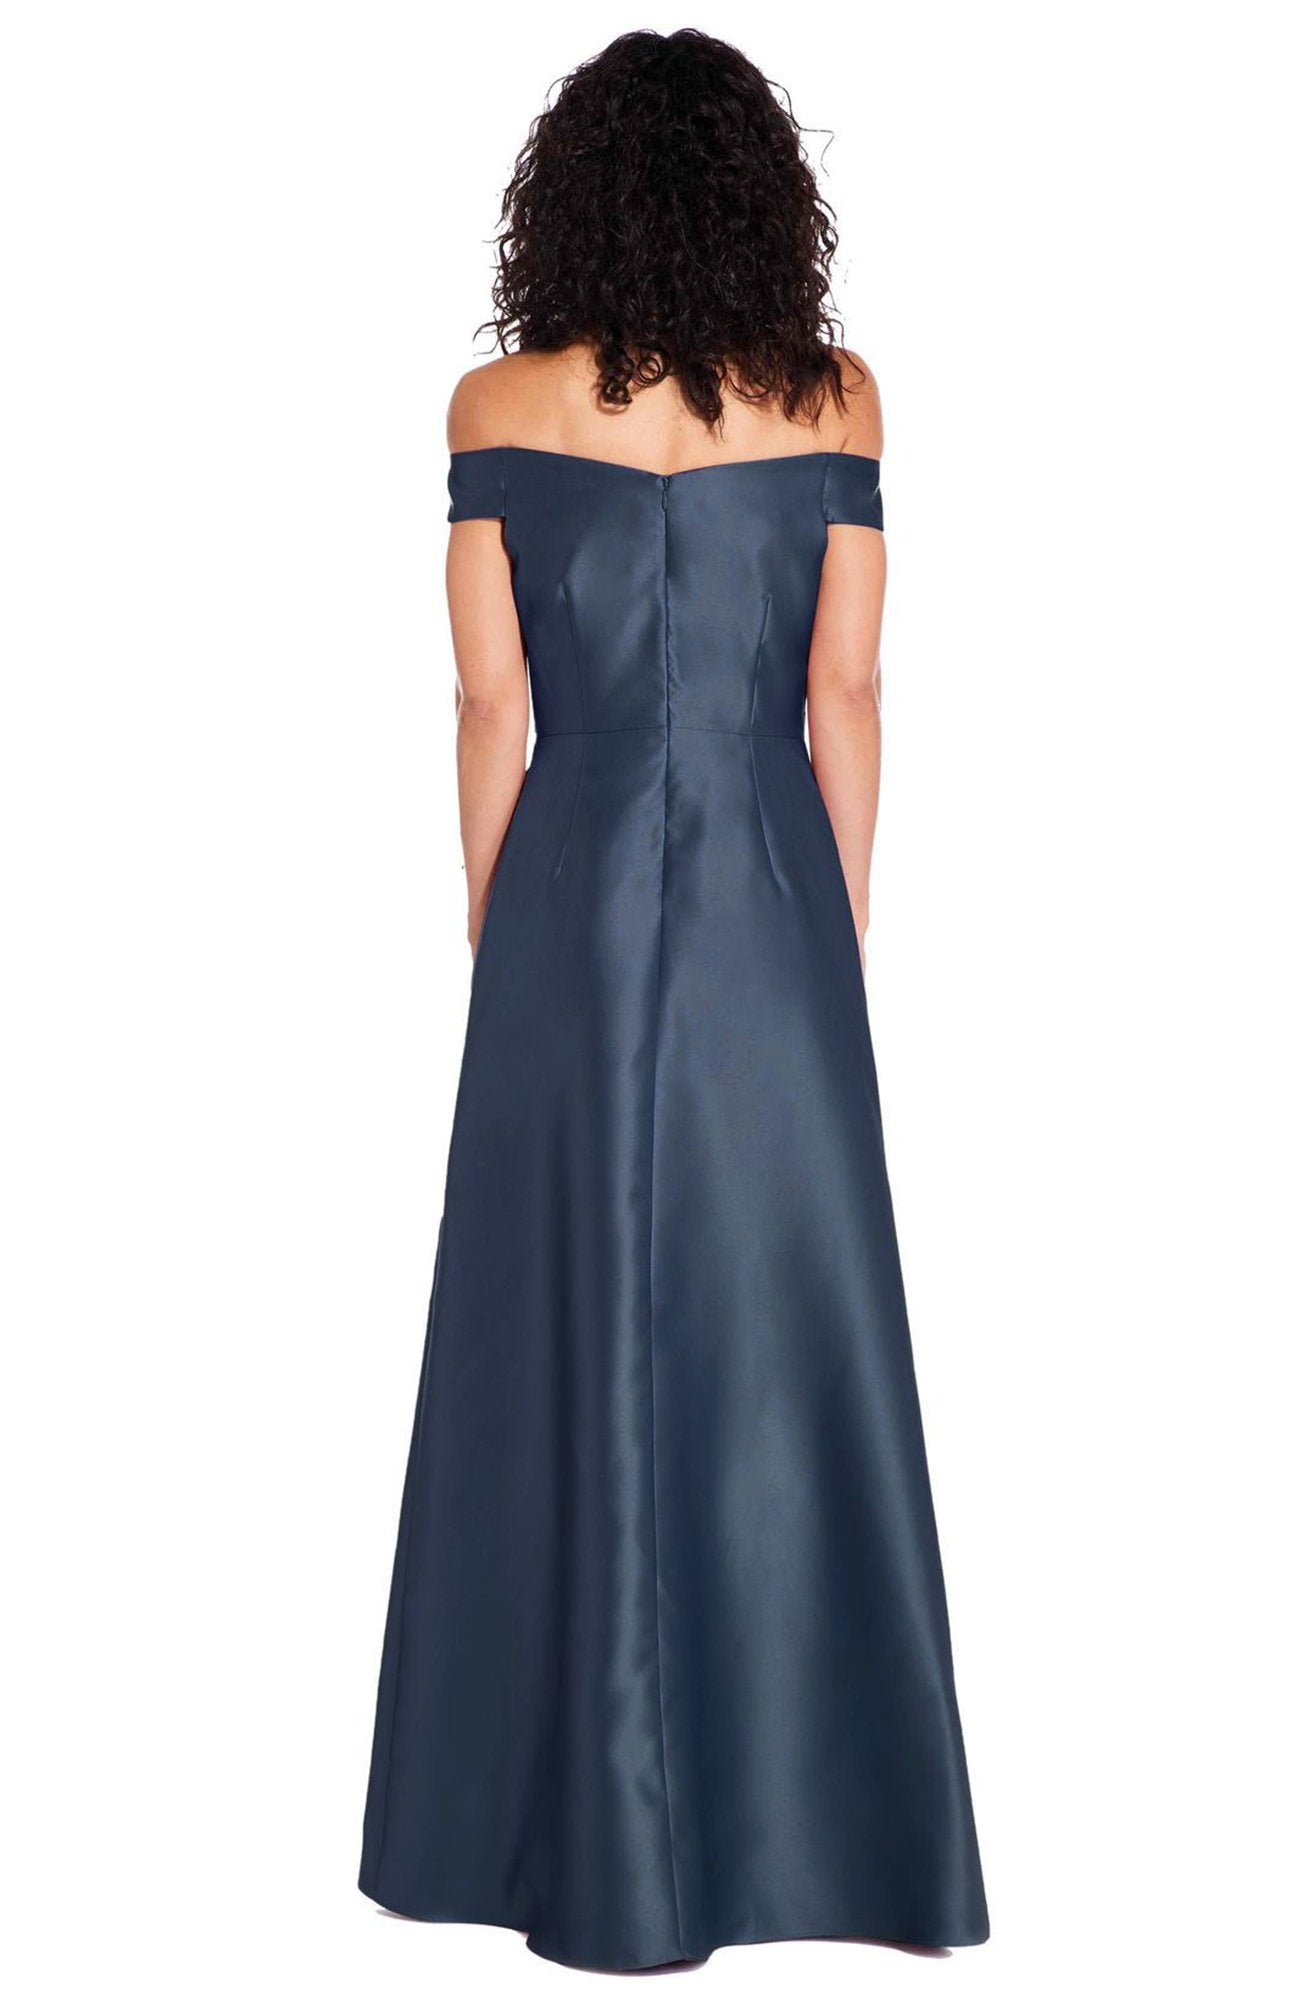 Adrianna Papell - AP1E205108 Off-Shoulder Pleated Mikado A-line Dress In Blue